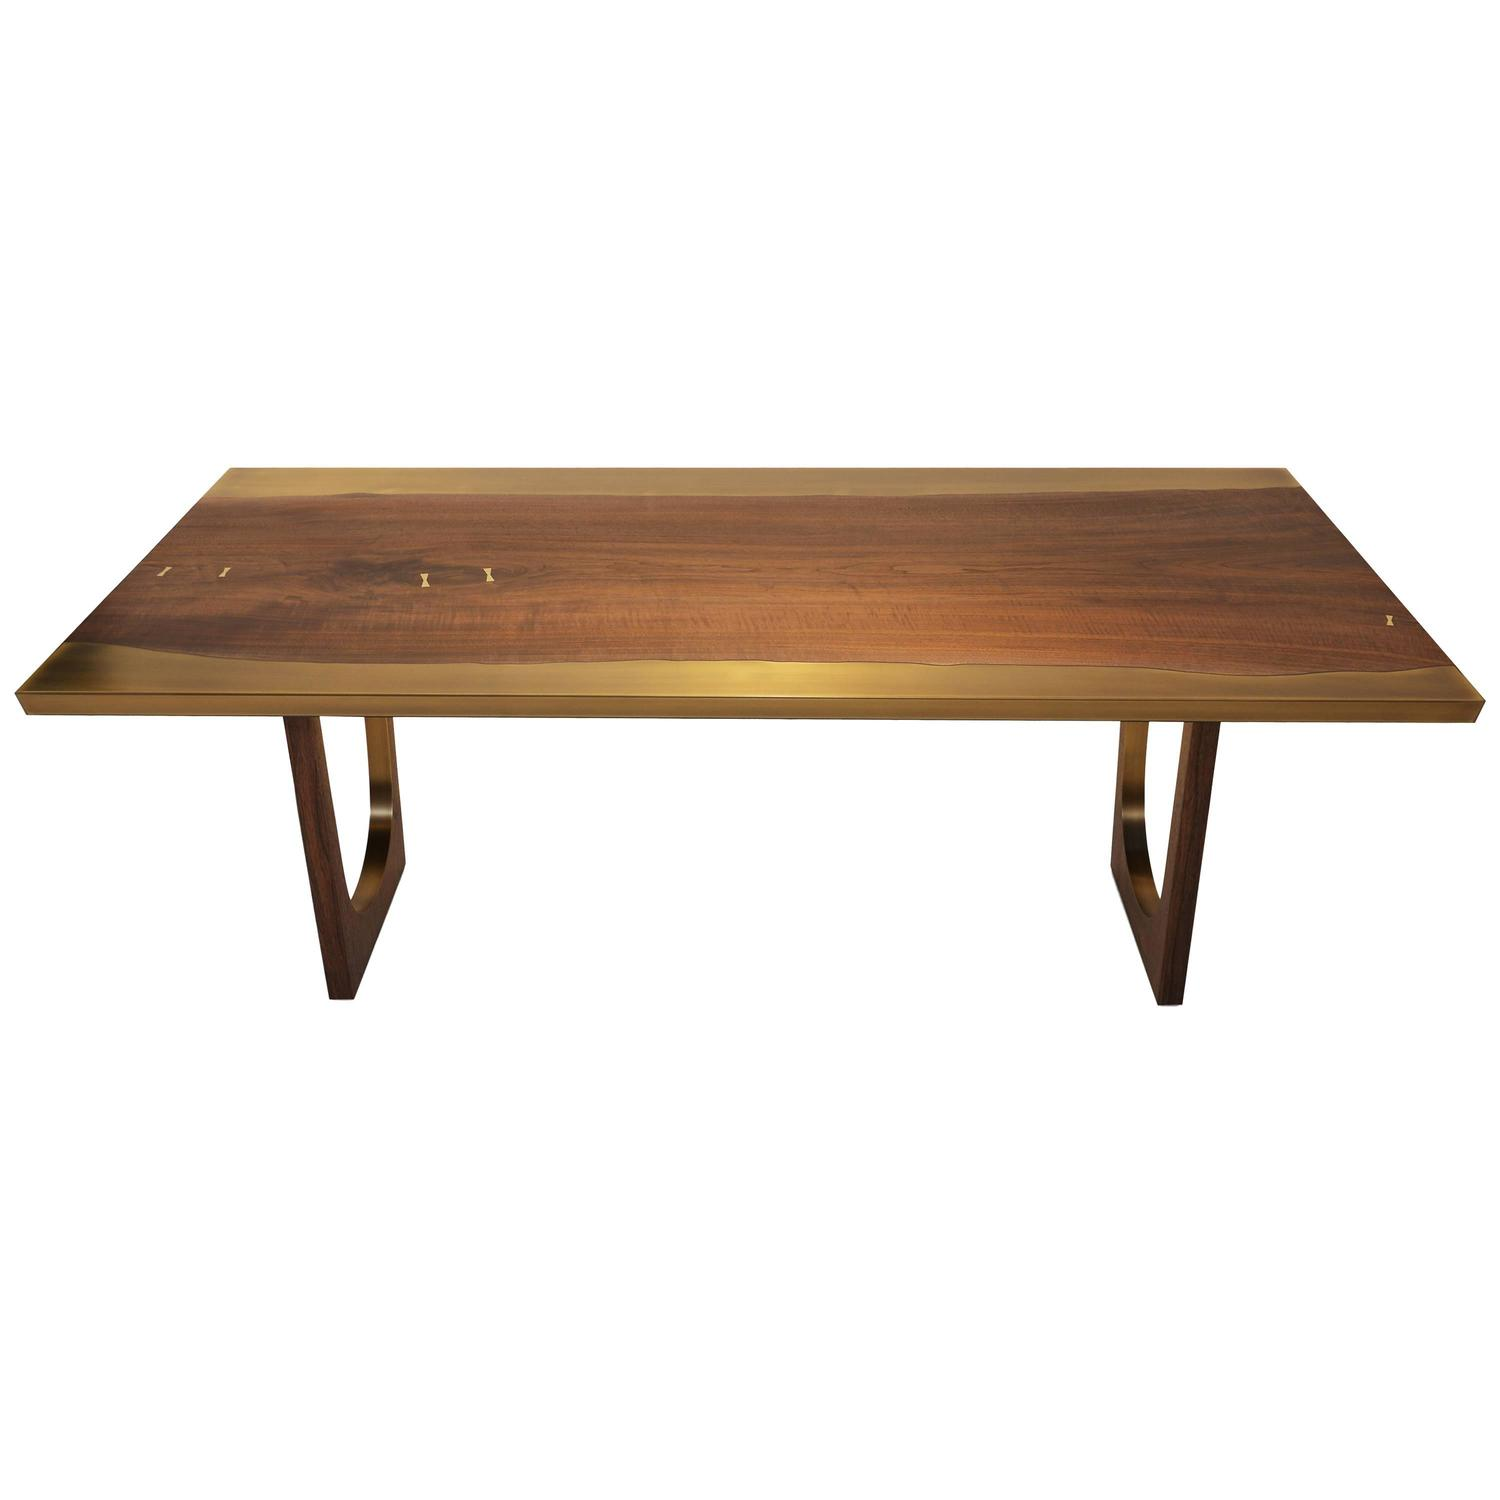 Nola dining table with walnut and bronze customizable